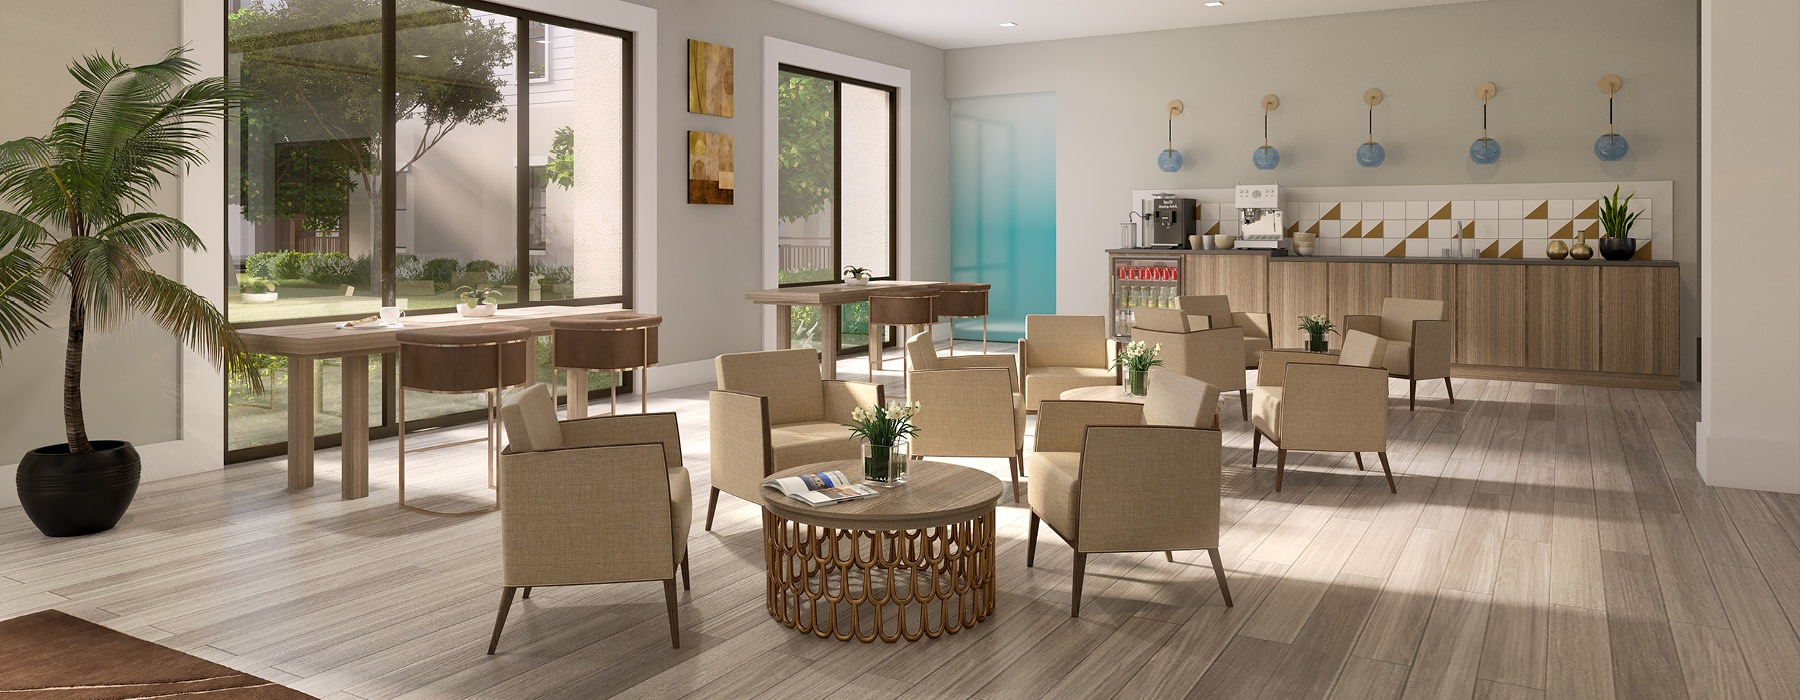 bright and open coffee area with tables and chairs